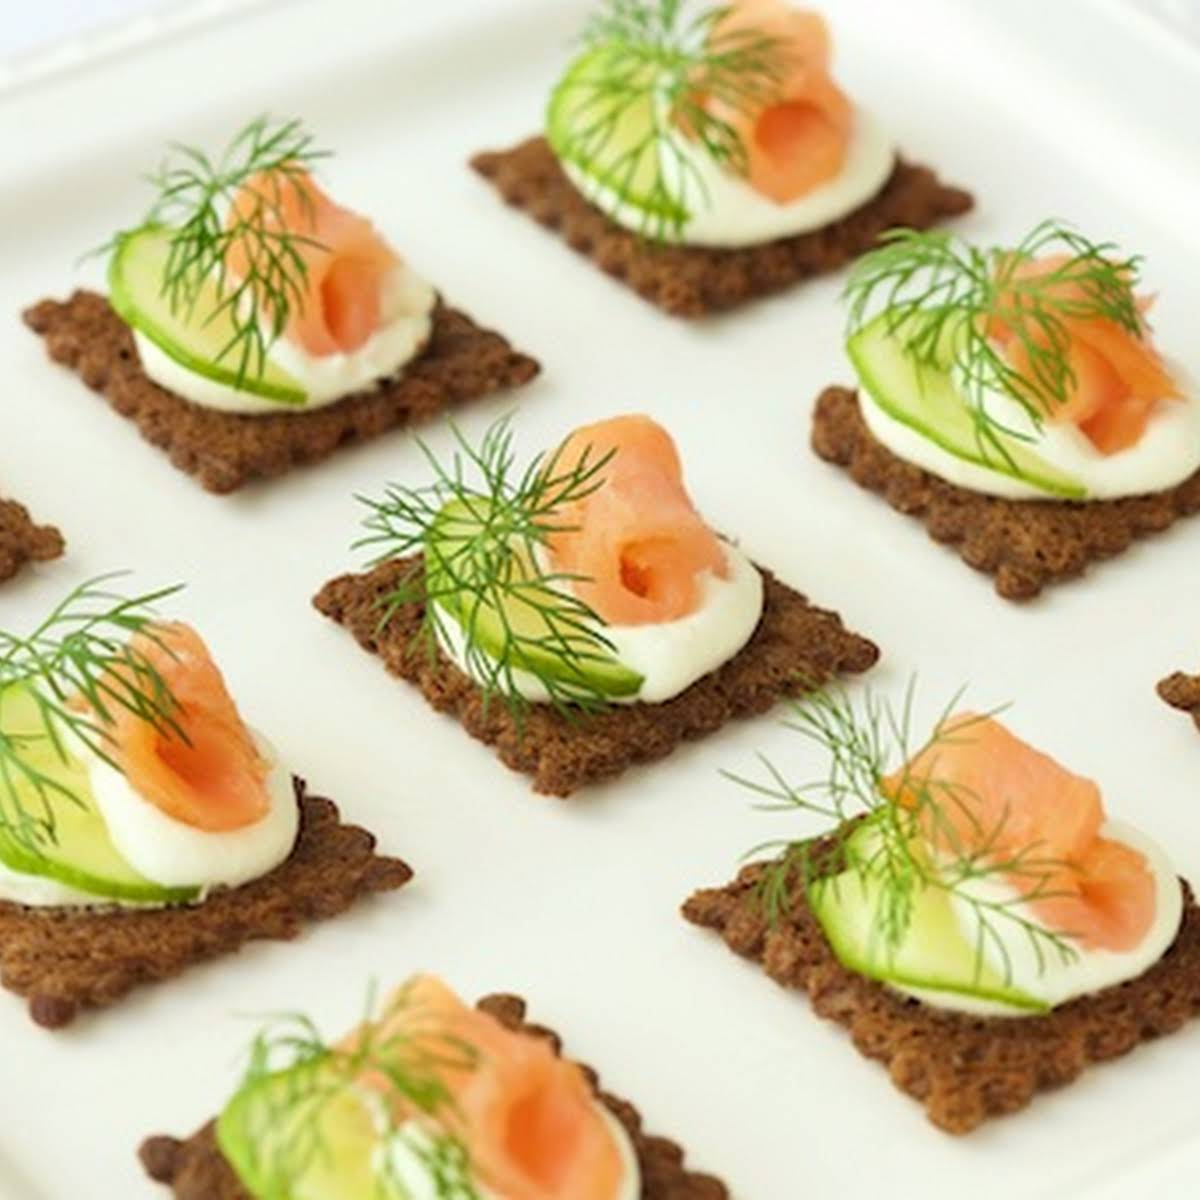 Goat Cheese Mousse and Smoked Salmon Canapés